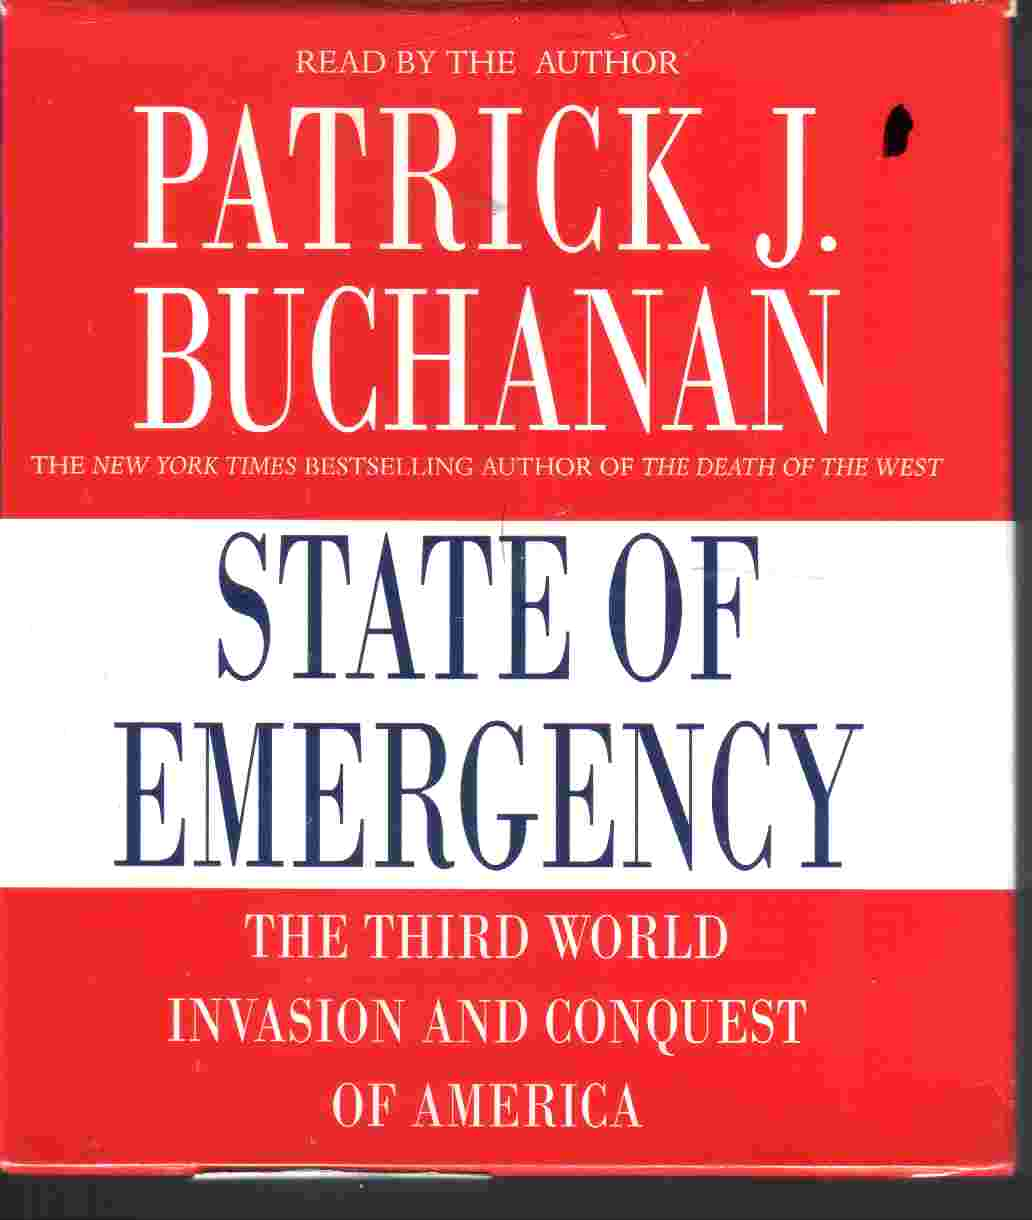 STATE OF EMERGENCY by Patrick Buchanan